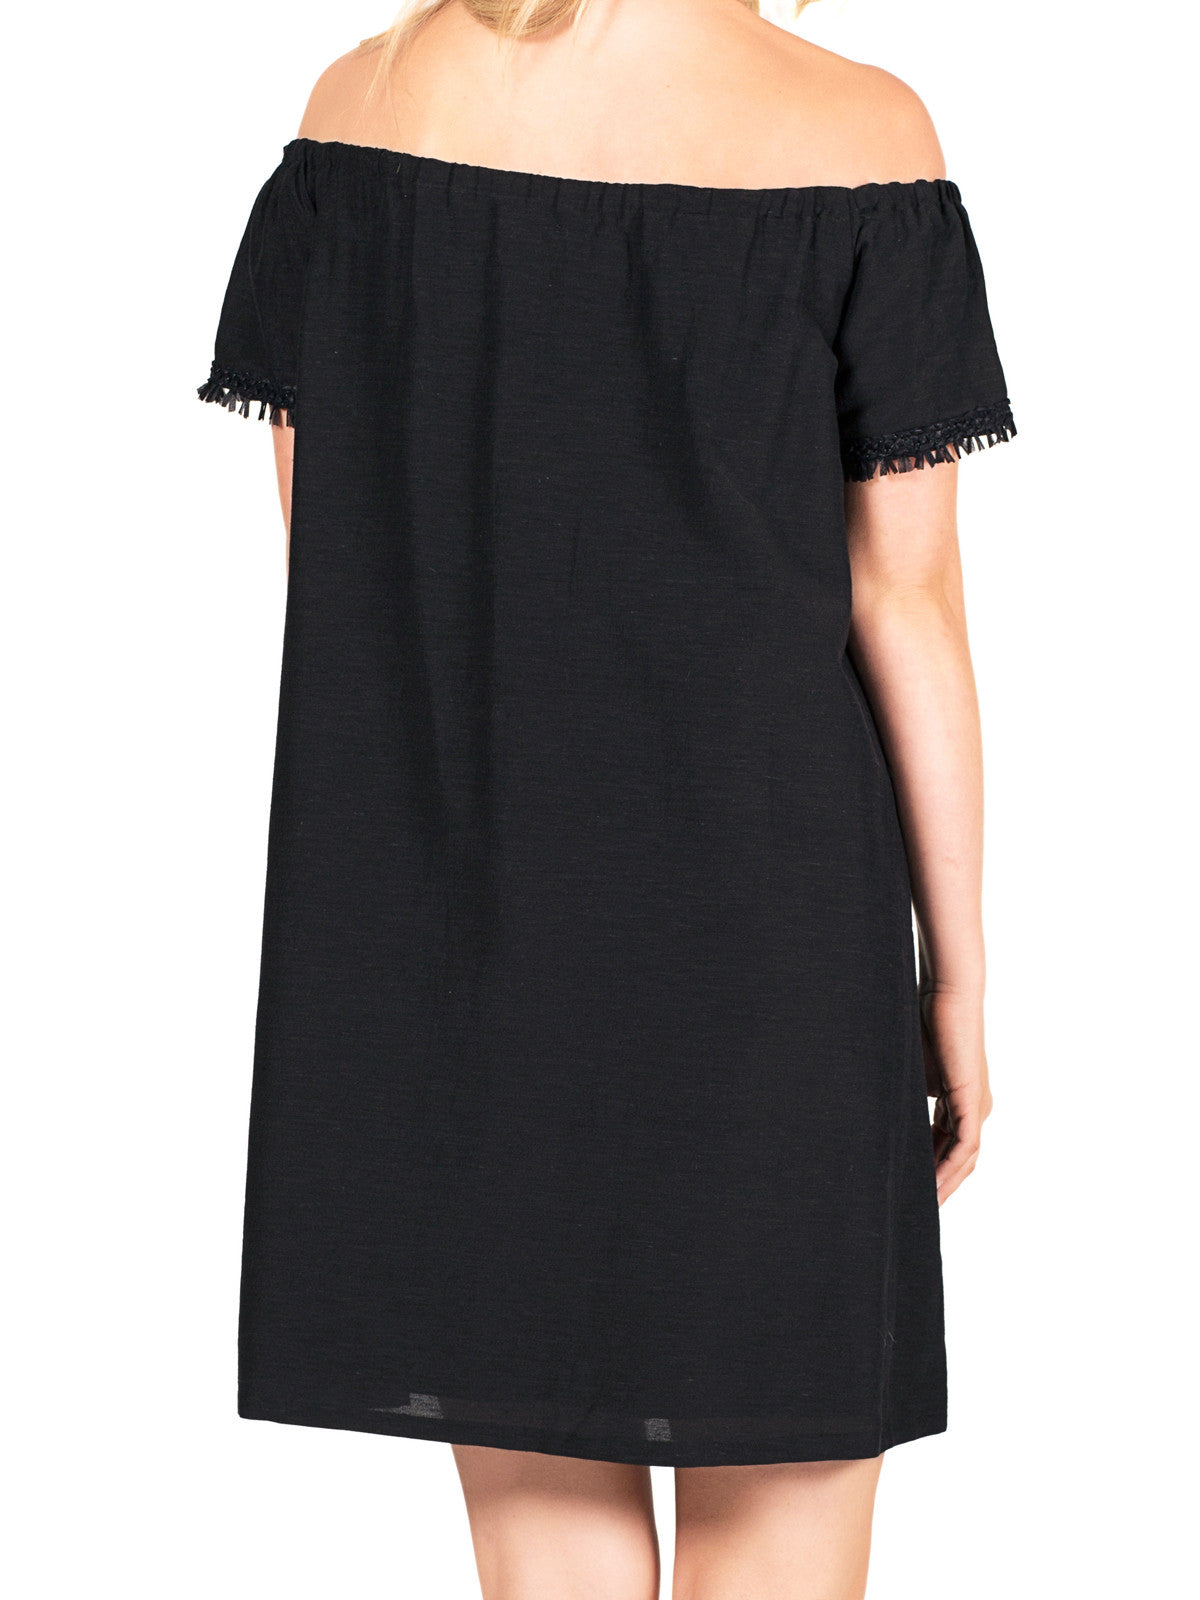 Tala Dress - Black/Black